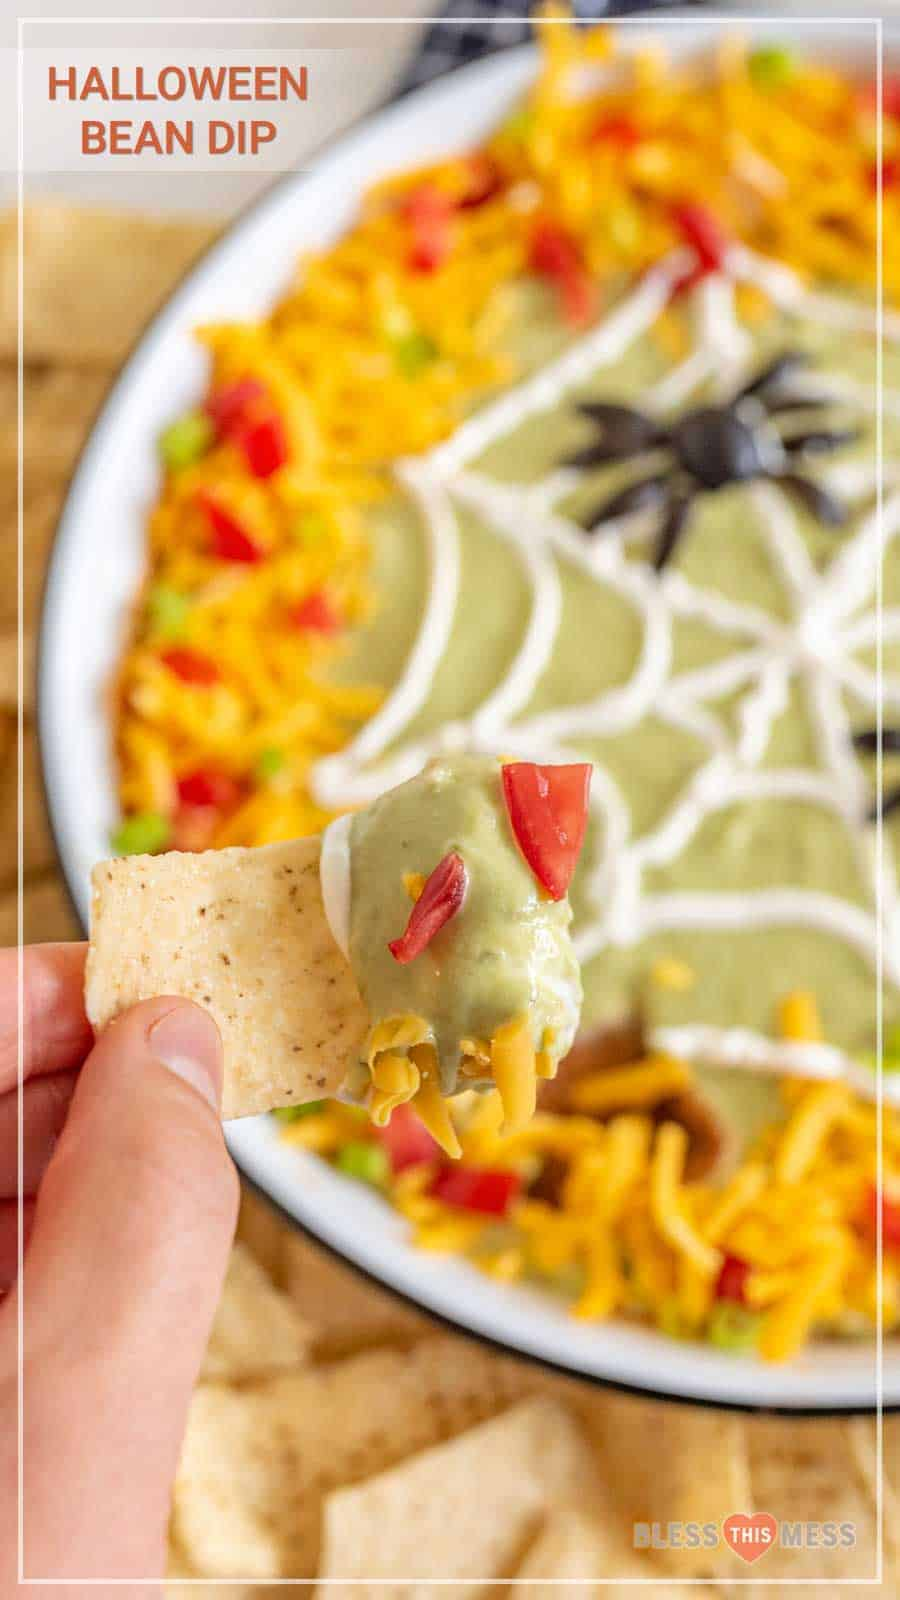 This easy Halloween bean dip is a no-bake recipe full of delicious ingredients that is SO easy to make, and its simple sour cream spider web makes it perfect to bring along to all your Halloween festivities! Wondering what to bring to this year's Halloween party? This bean dip is such a breeze to whip up (no cooking involved) and it looks intricate even though it's so easy, fast, and tasty! #beandip #layeredbeandip #refriedbeans #halloweenrecipes #halloweenbeandip #chipsanddip